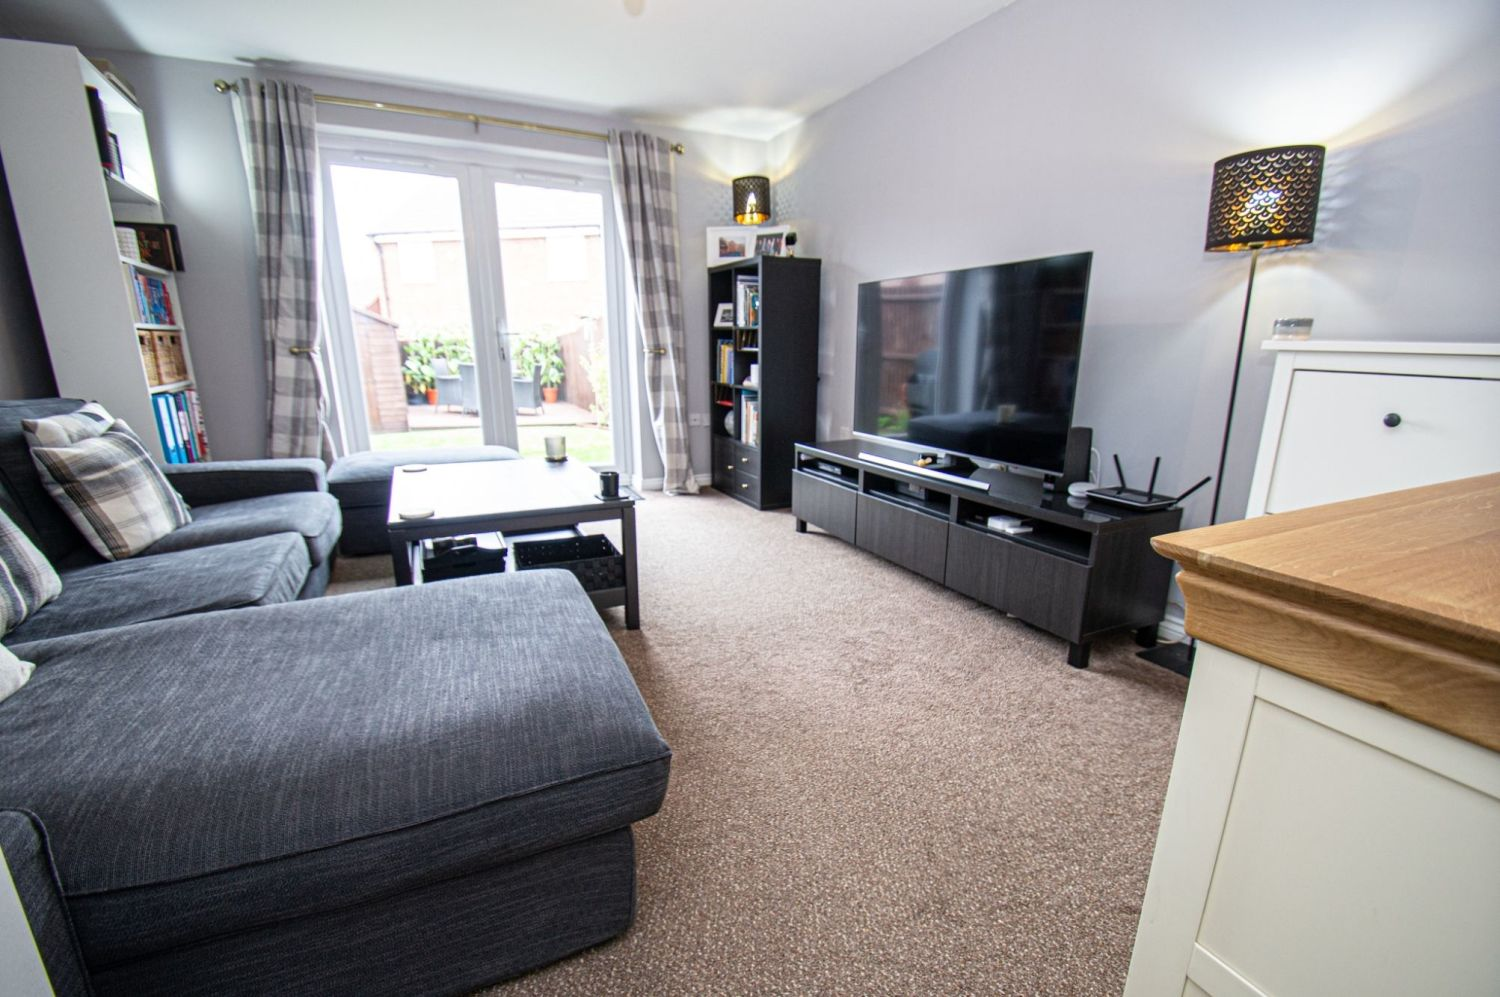 2 bed semi-detached for sale in Bobeche Place, Kingswinford  - Property Image 2